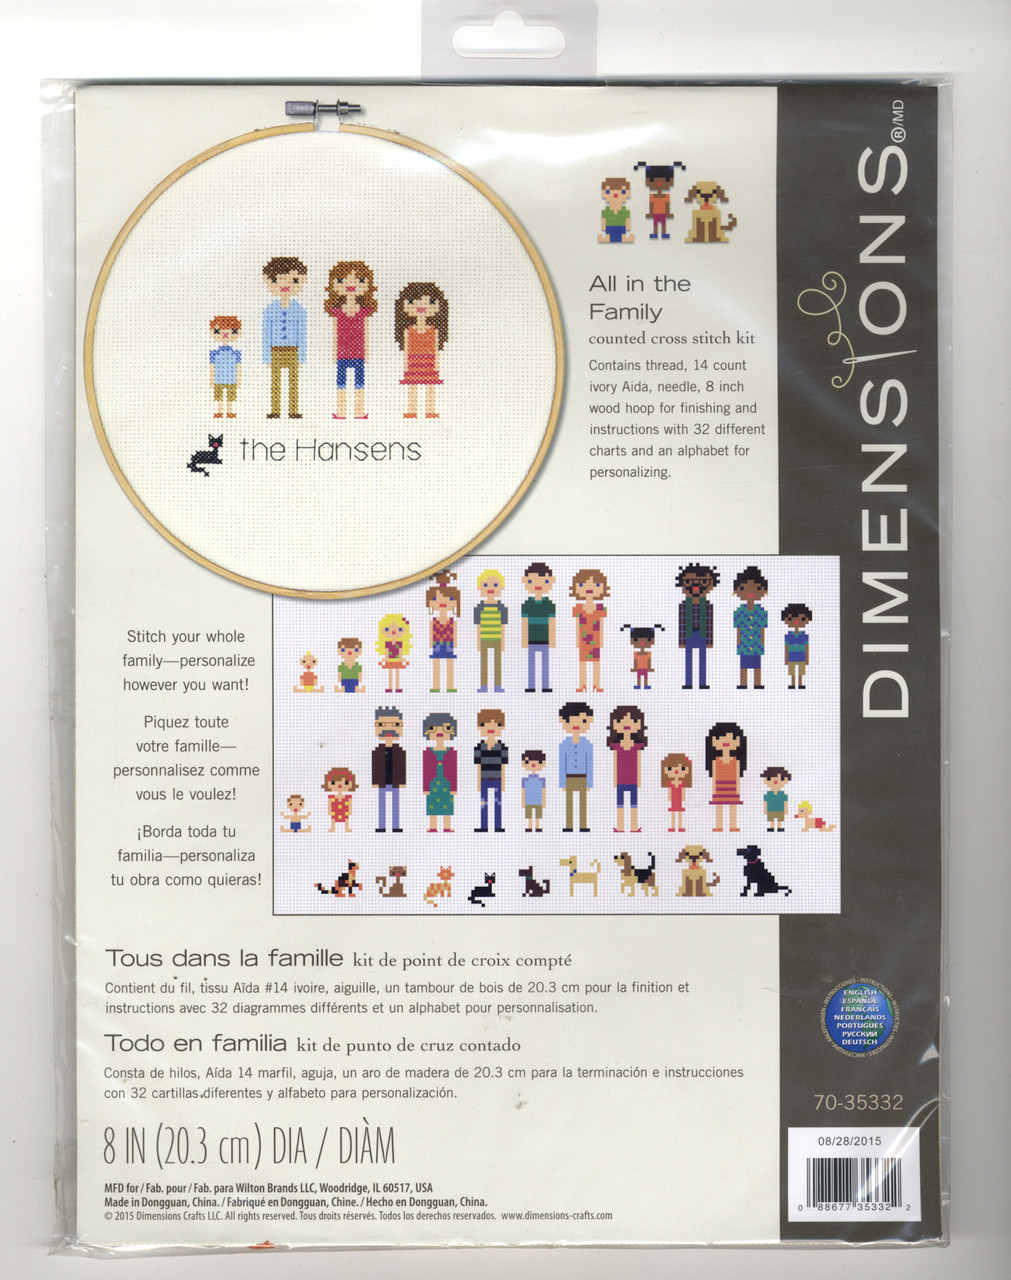 Dimensions - All in the Family